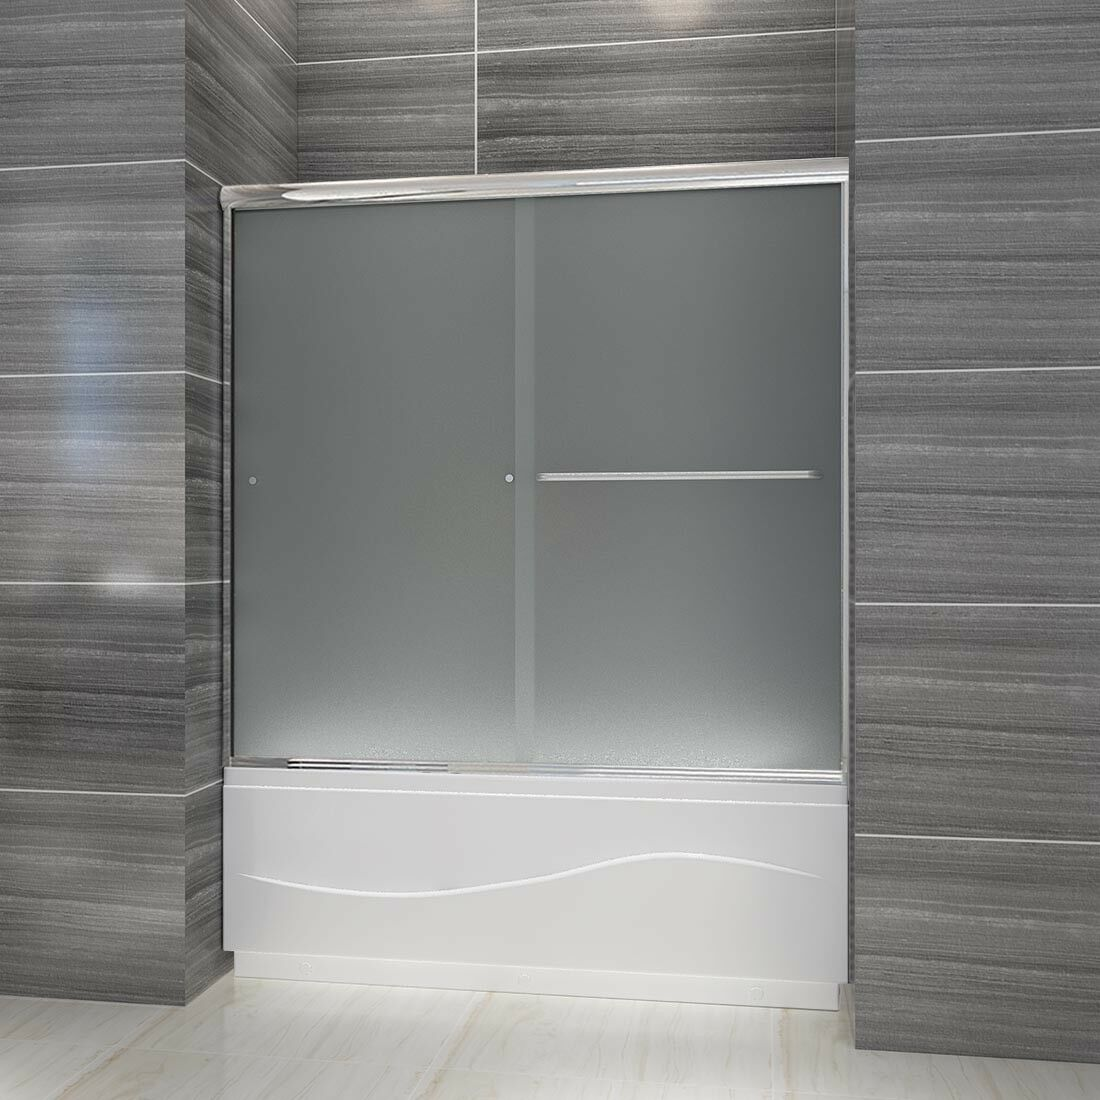 Elegant 60 W Bypass Sliding Shower Bathtub Door 60 W Chrome Finish 1 4 Glass